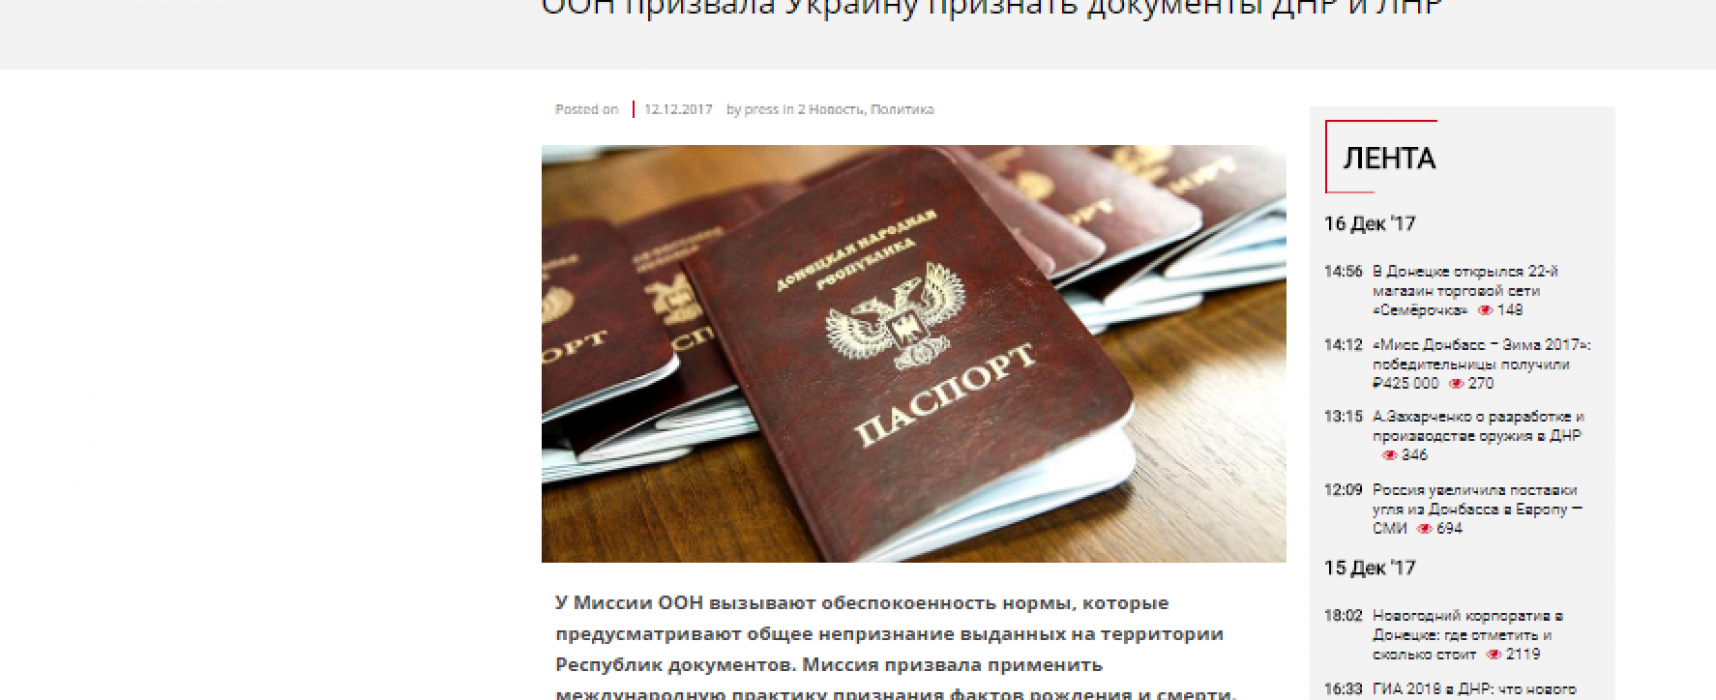 Fake: UN Demands Ukraine Recognize Occupied Territory Documents